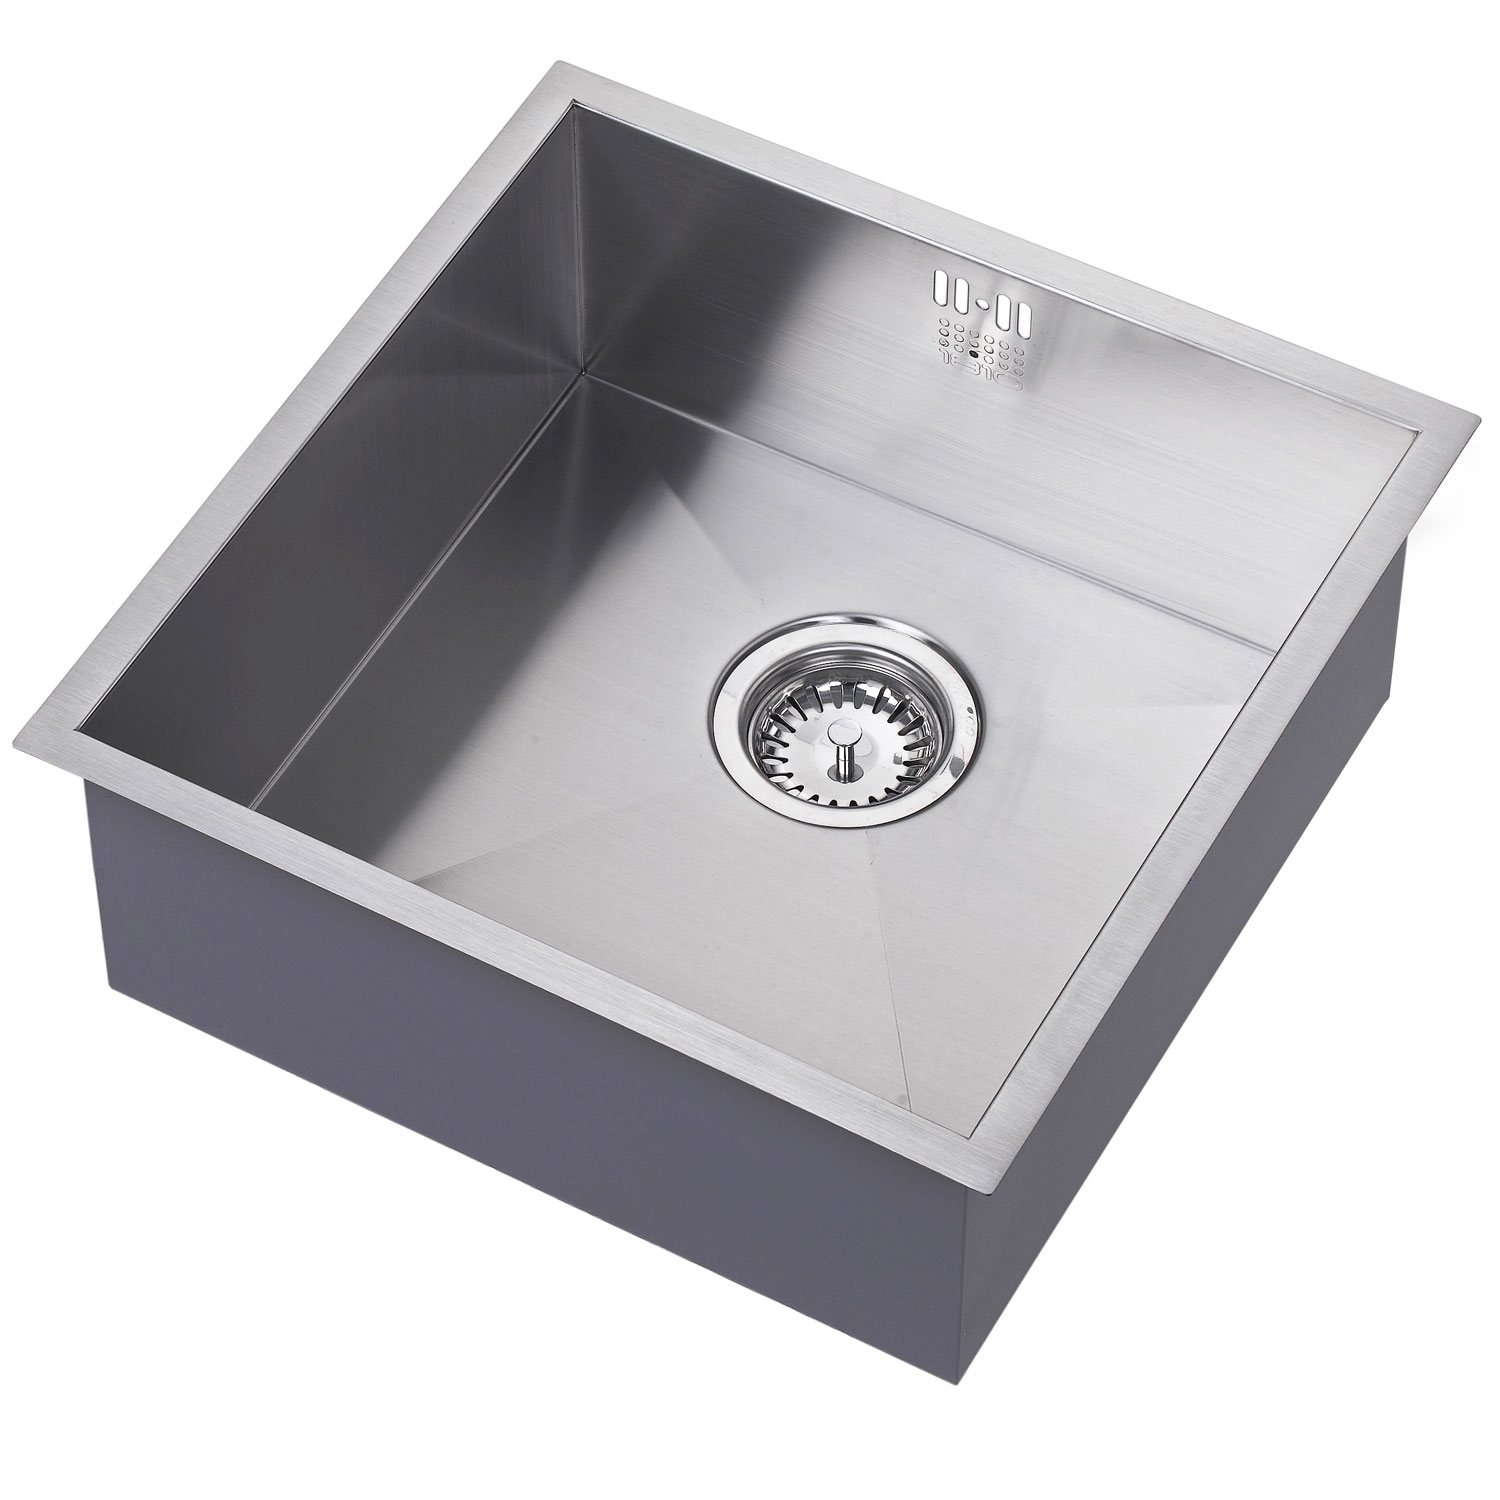 The 1810 Company Zenuno 400U 1.0 Bowl Kitchen Sink - Stainless Steel-0